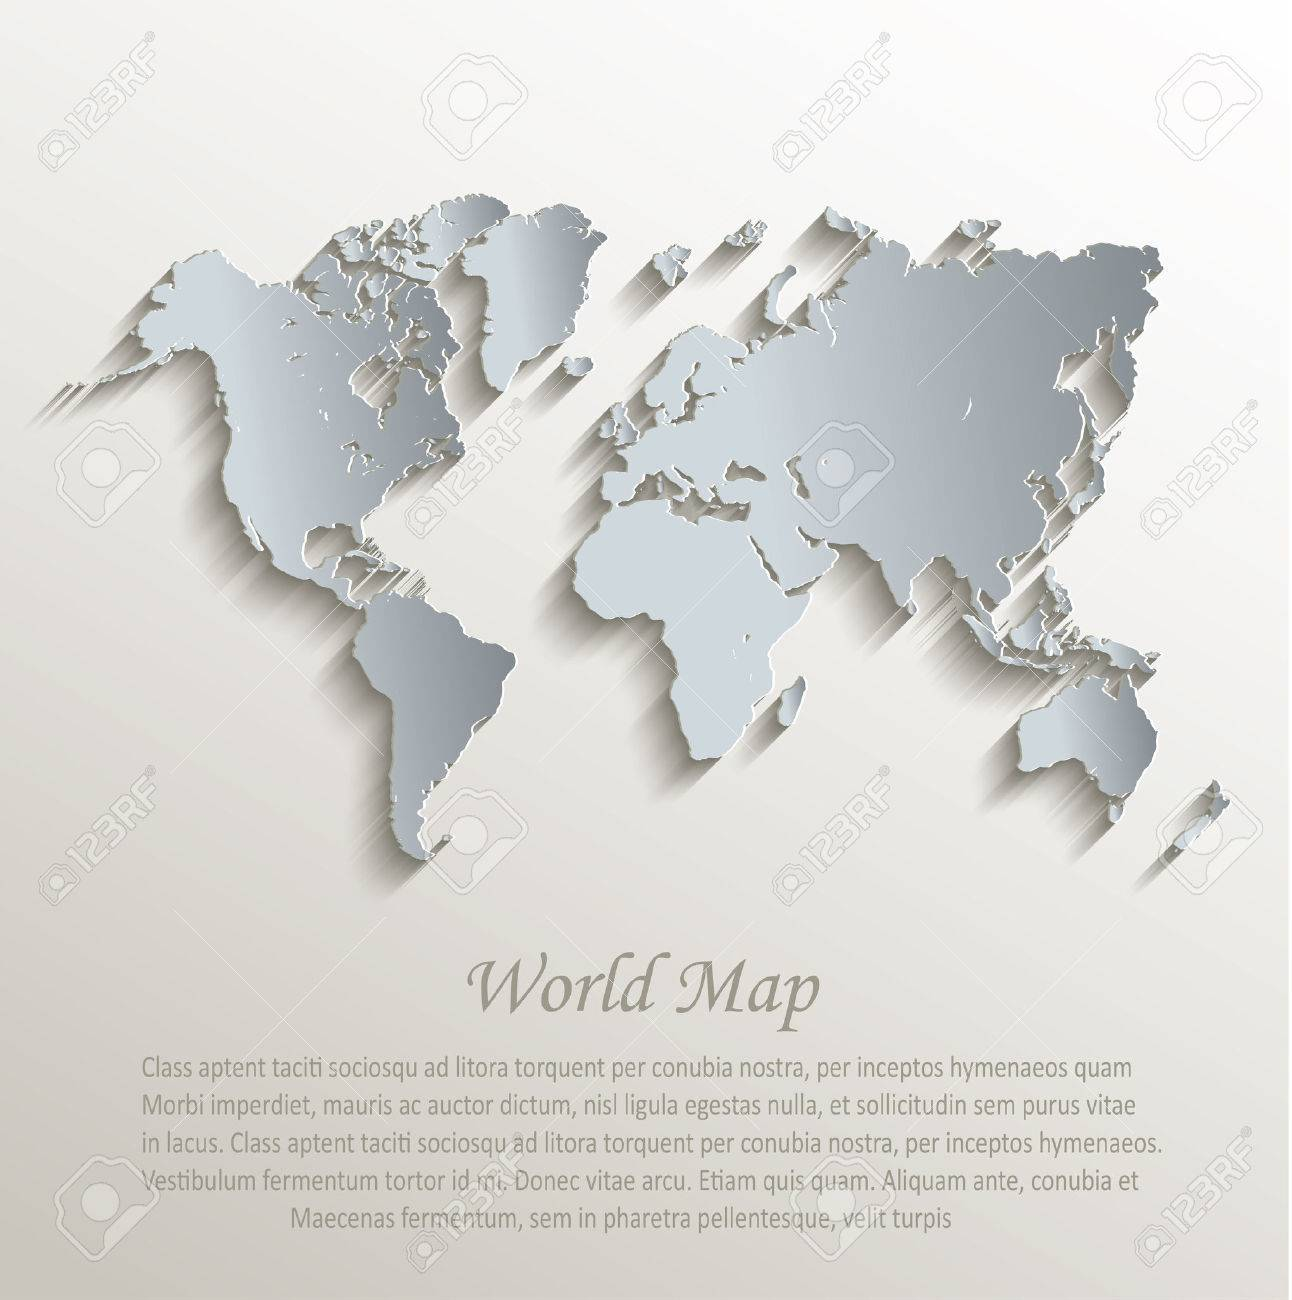 World map white blue card paper 3D vector - 33503653